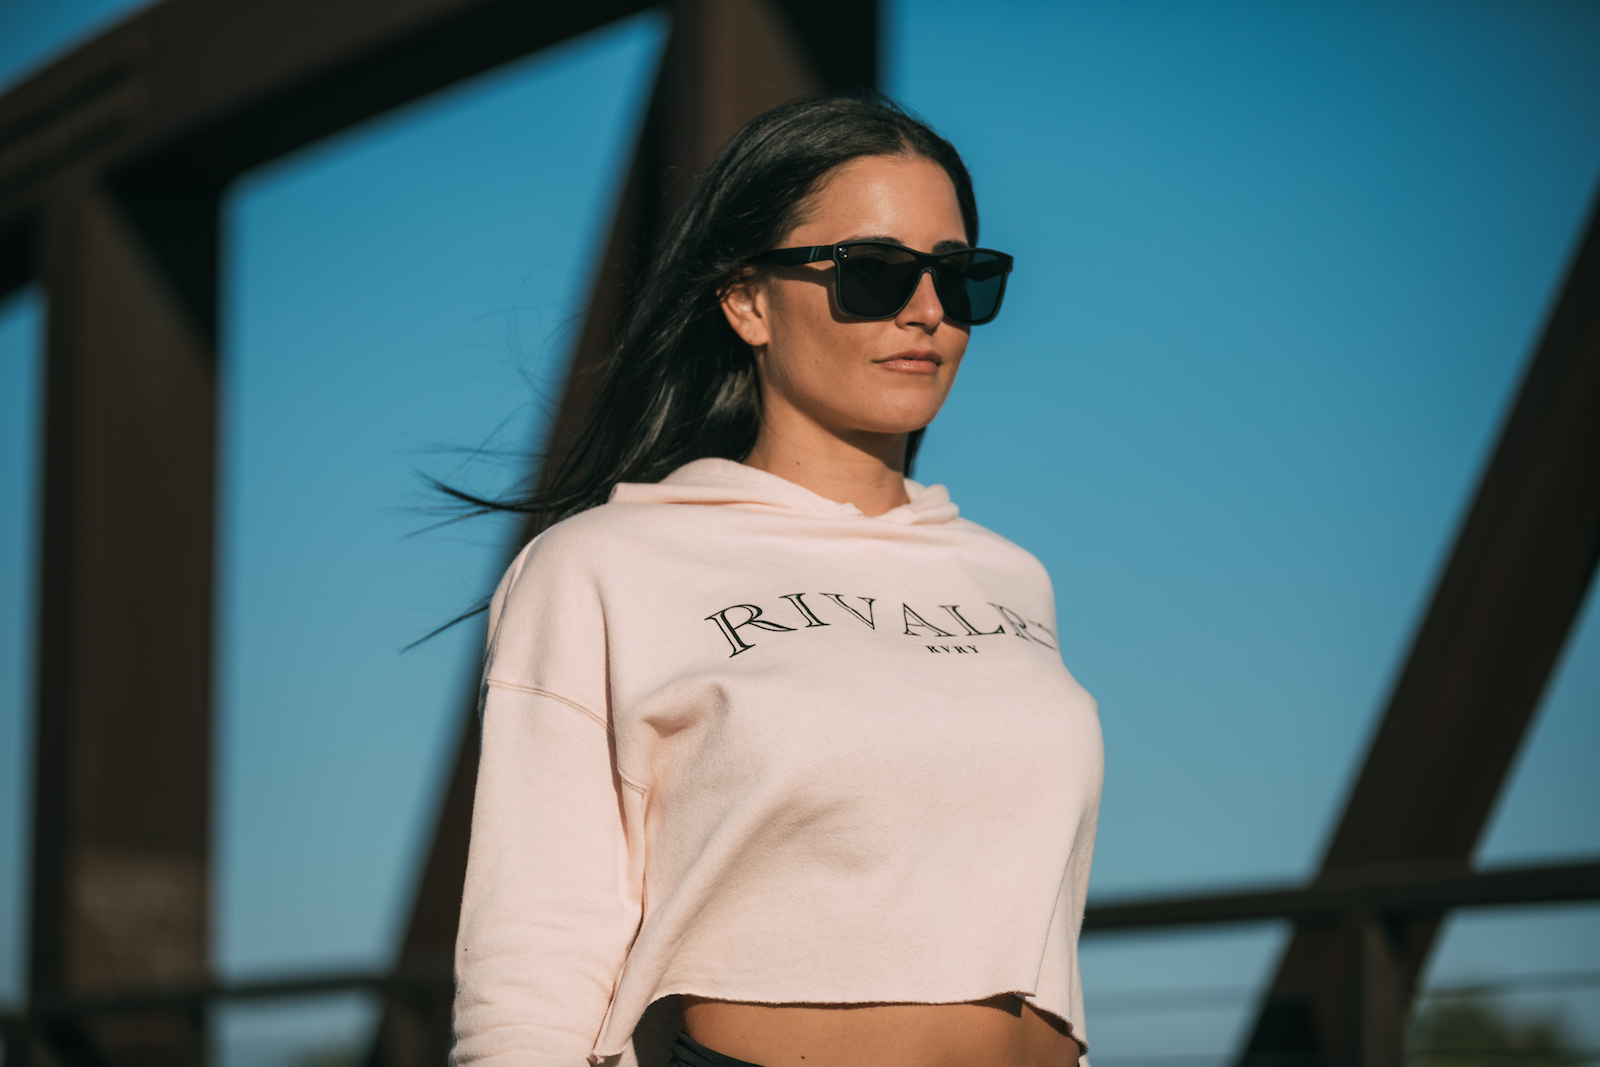 Rivalry Clothing Co. Womens | Rivalry Clothing Co.